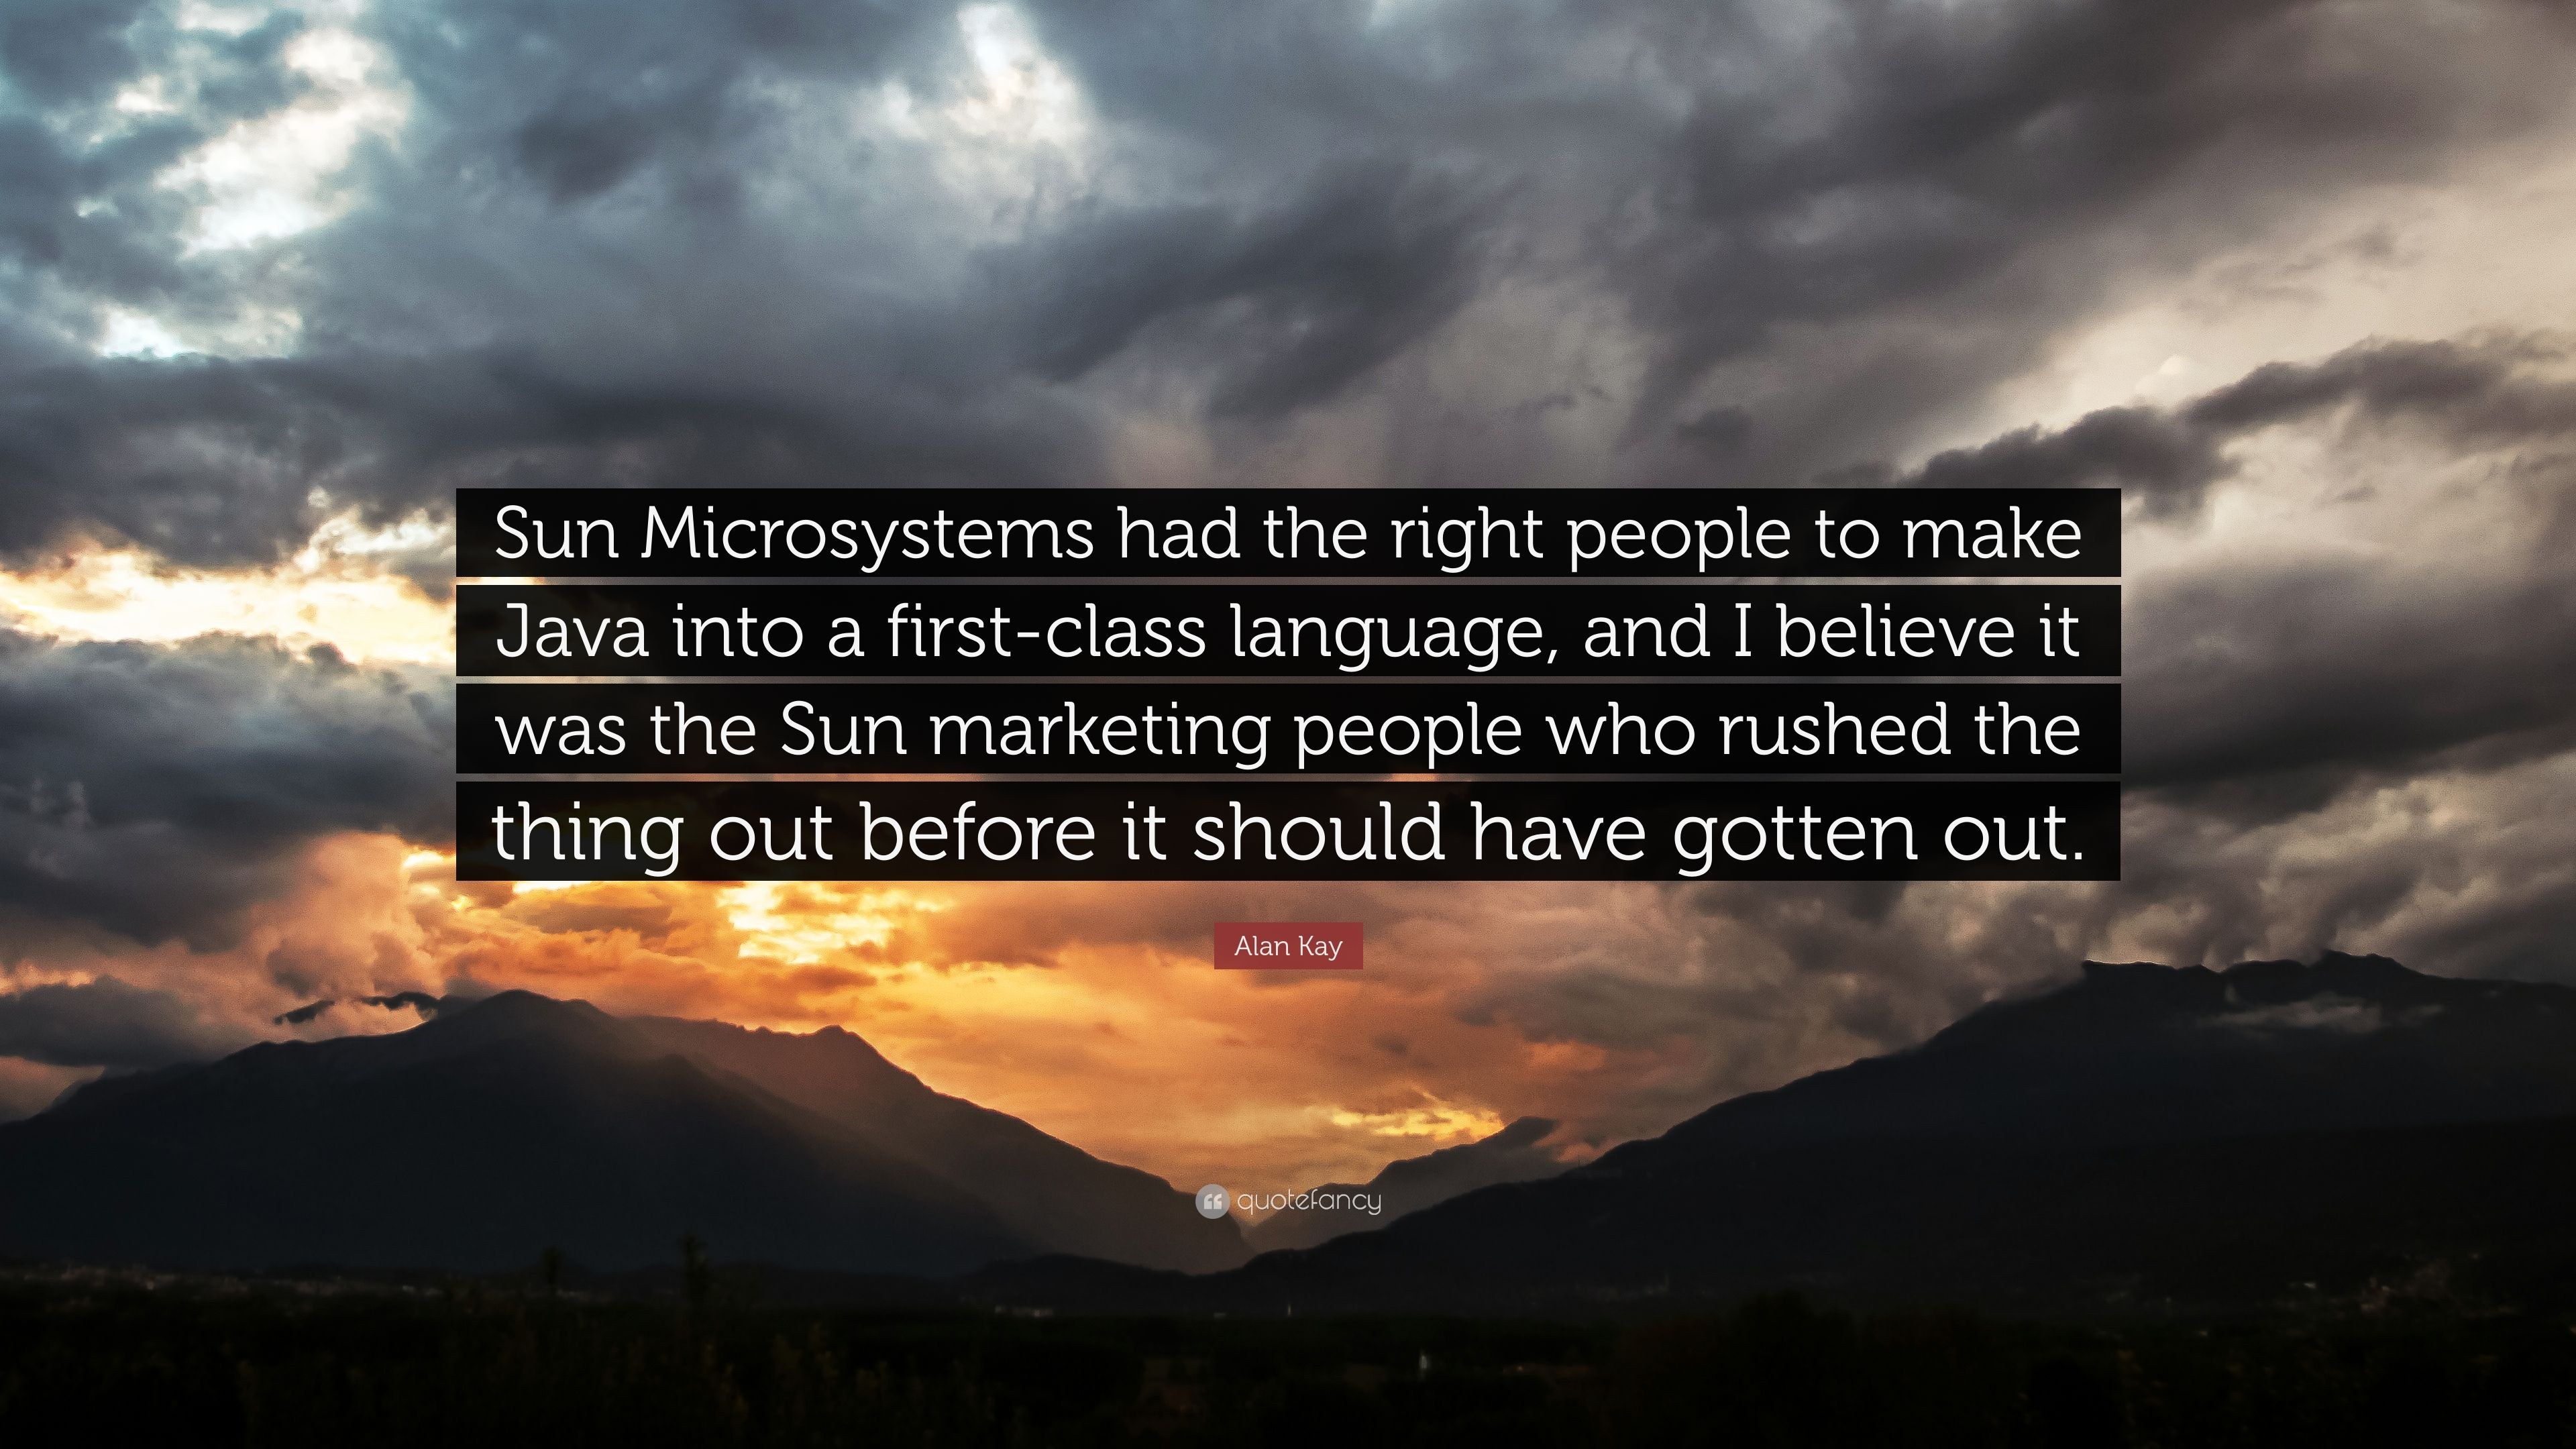 Alan kay quote sun microsystems had the right people to make java